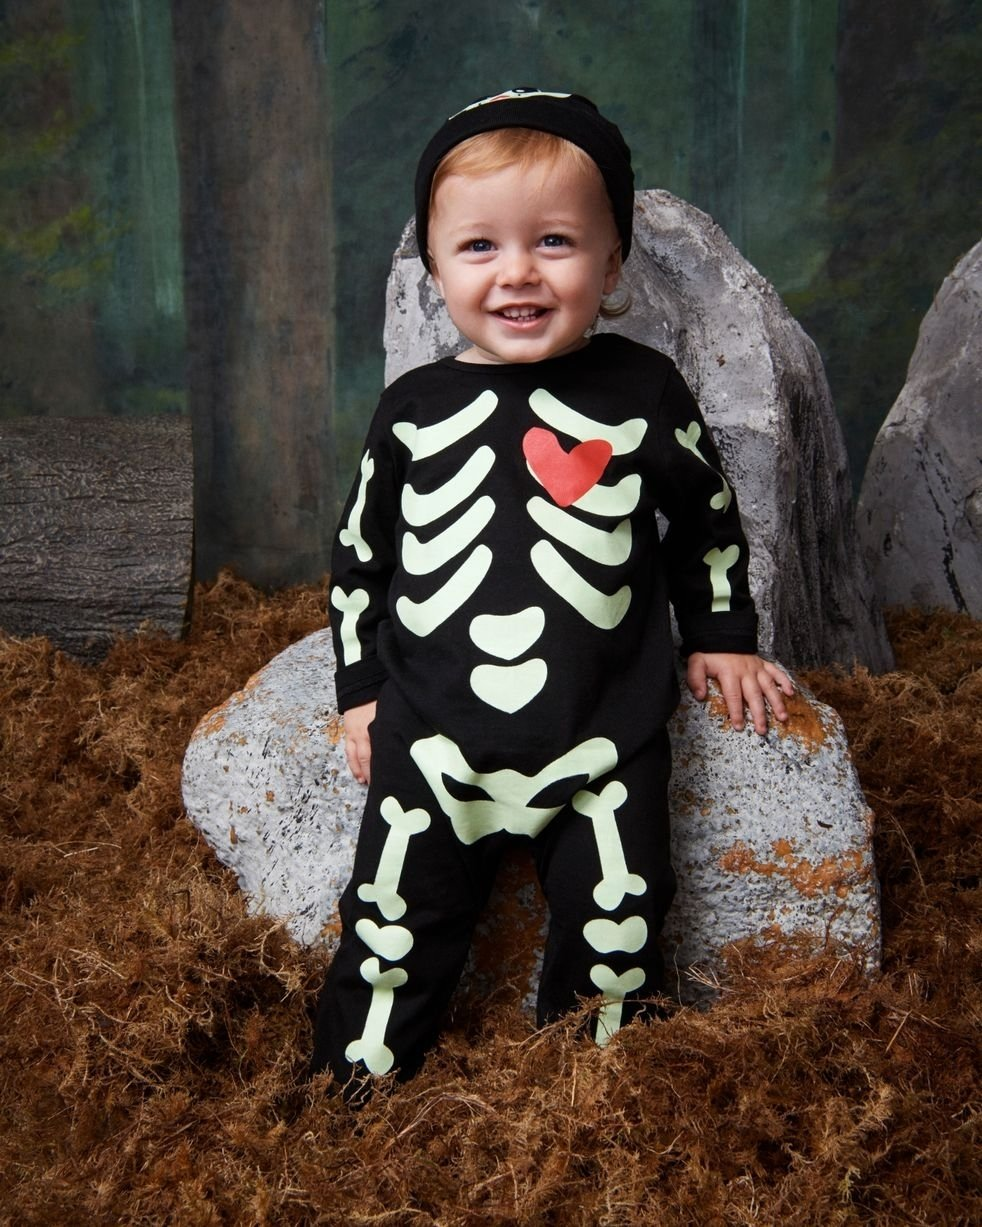 10 Attractive Baby Costume Ideas For Boys last minute halloween costume ideas for kids babies and teenagers 1 2020